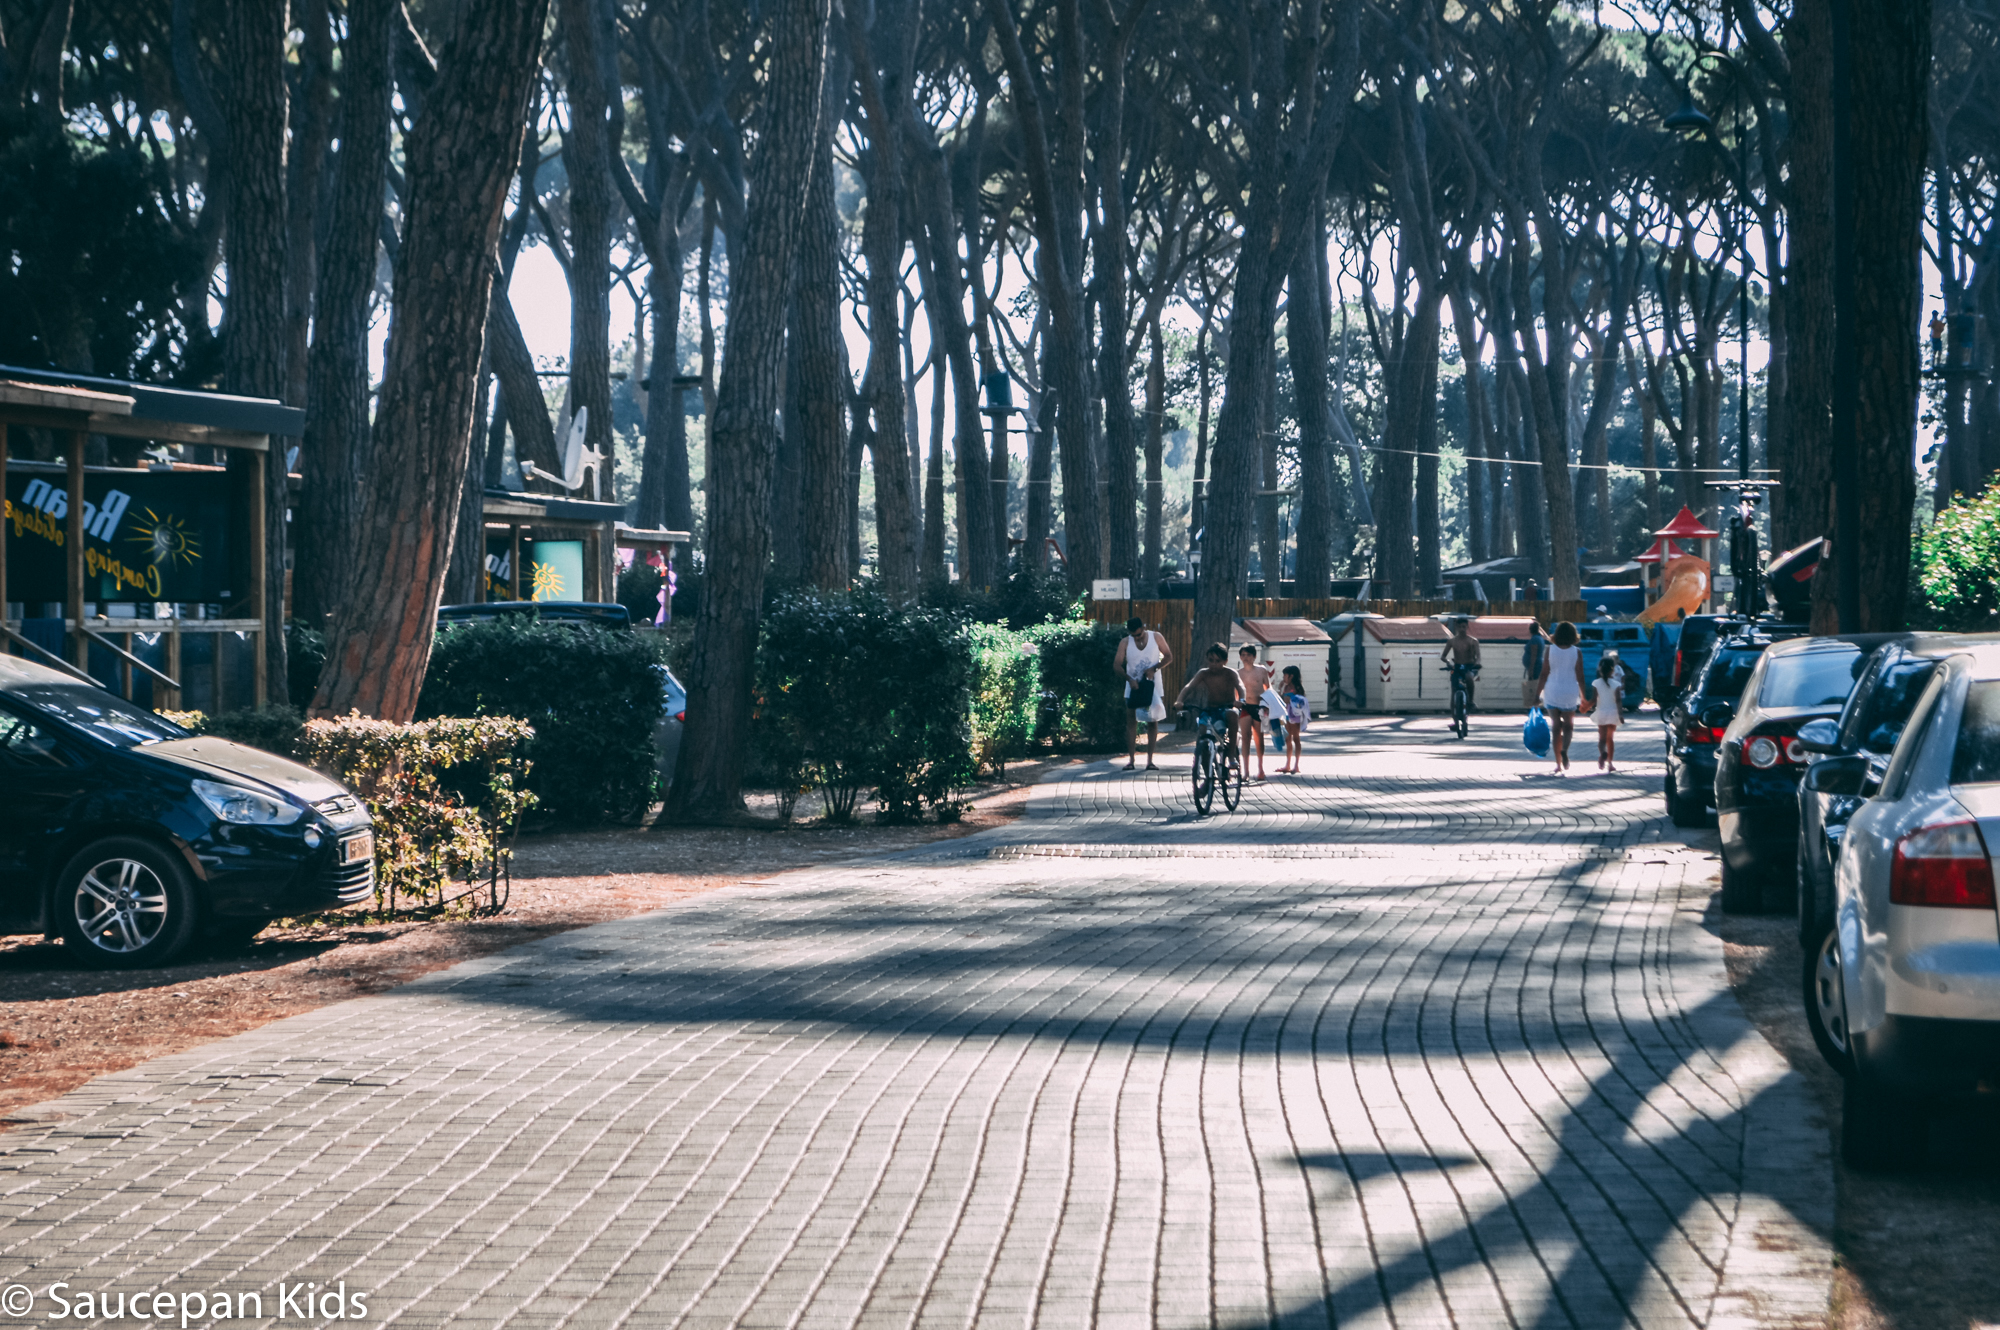 Saucepan Kids visit Parc Albatros in Tuscany with Canvas Holidays 2017 - The cobbled streets around the campsite